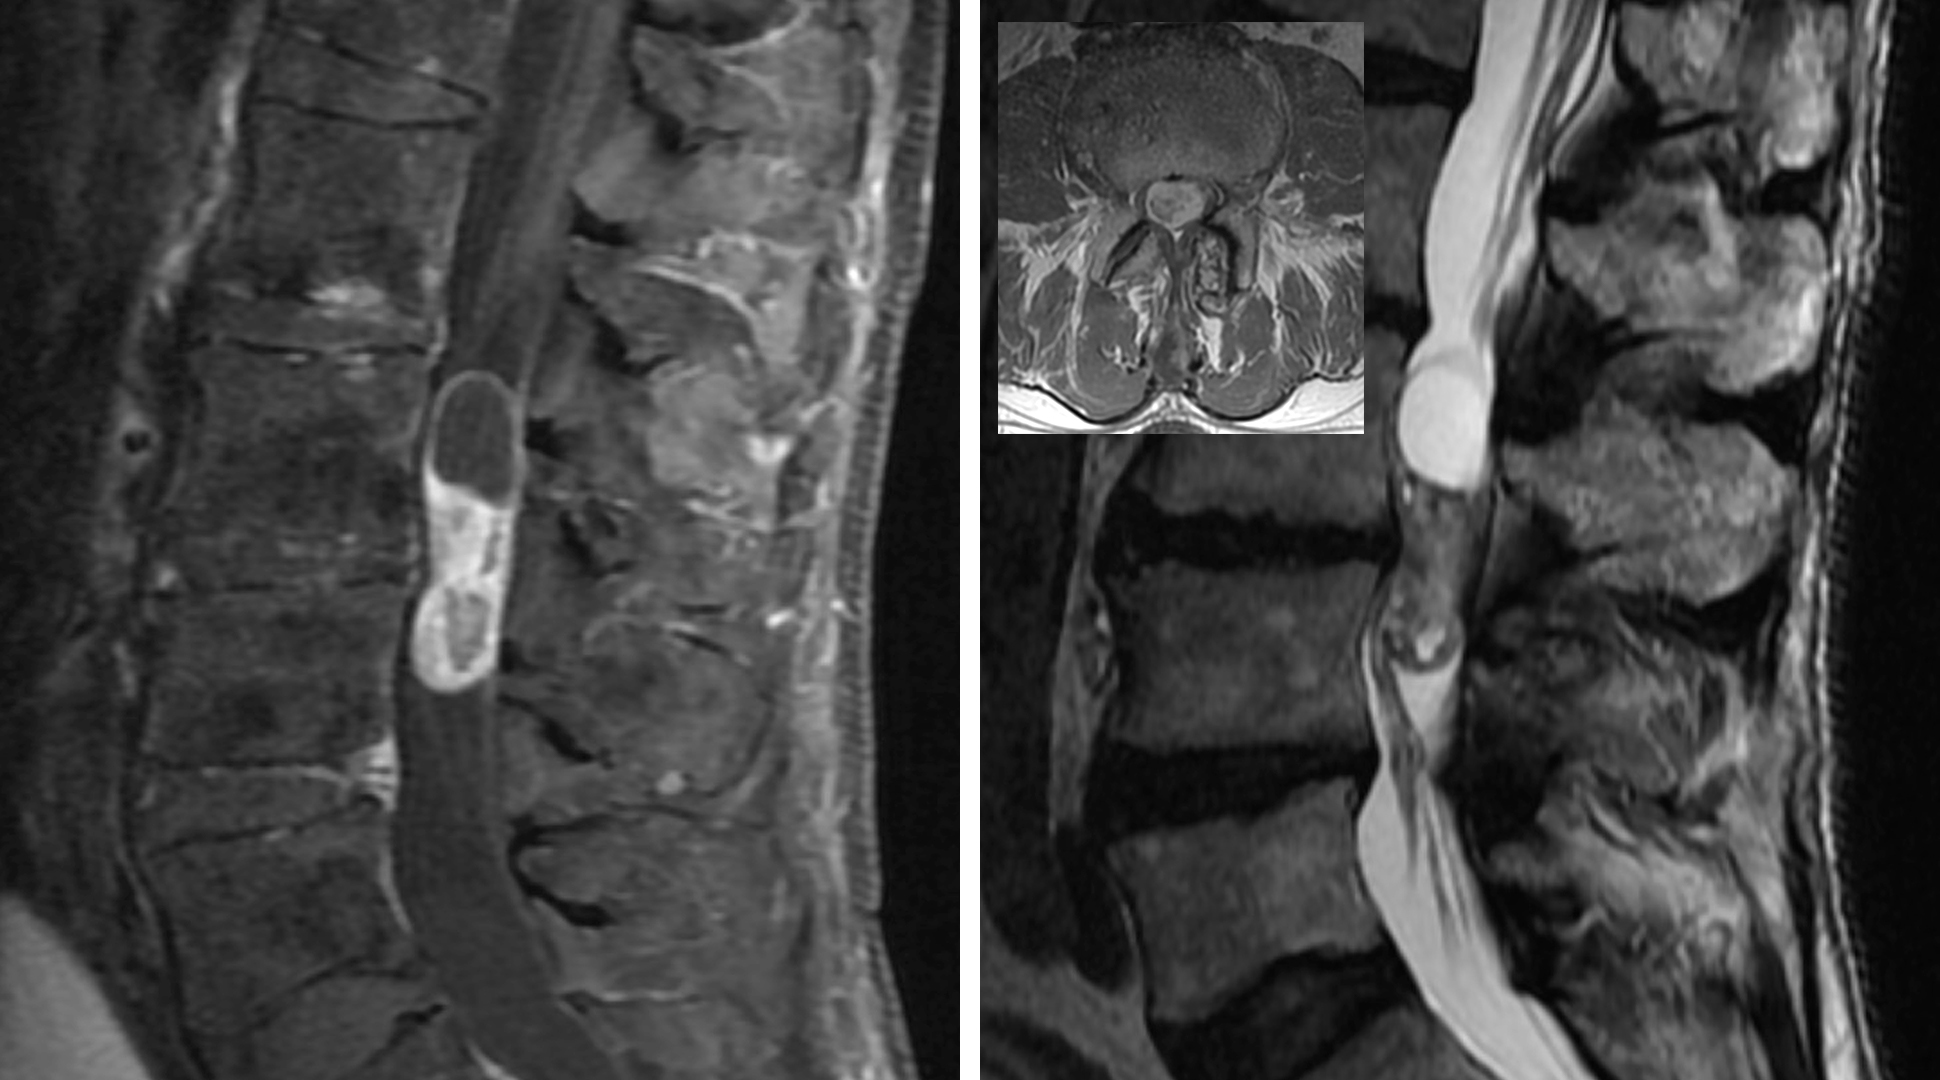 Extramedullary Spinal Cord Tumor The Neurosurgical Atlas By Aaron Cohen Gadol M D Ependymomas of the filum terminale (eft) form a specific and relatively. extramedullary spinal cord tumor the neurosurgical atlas by aaron cohen gadol m d